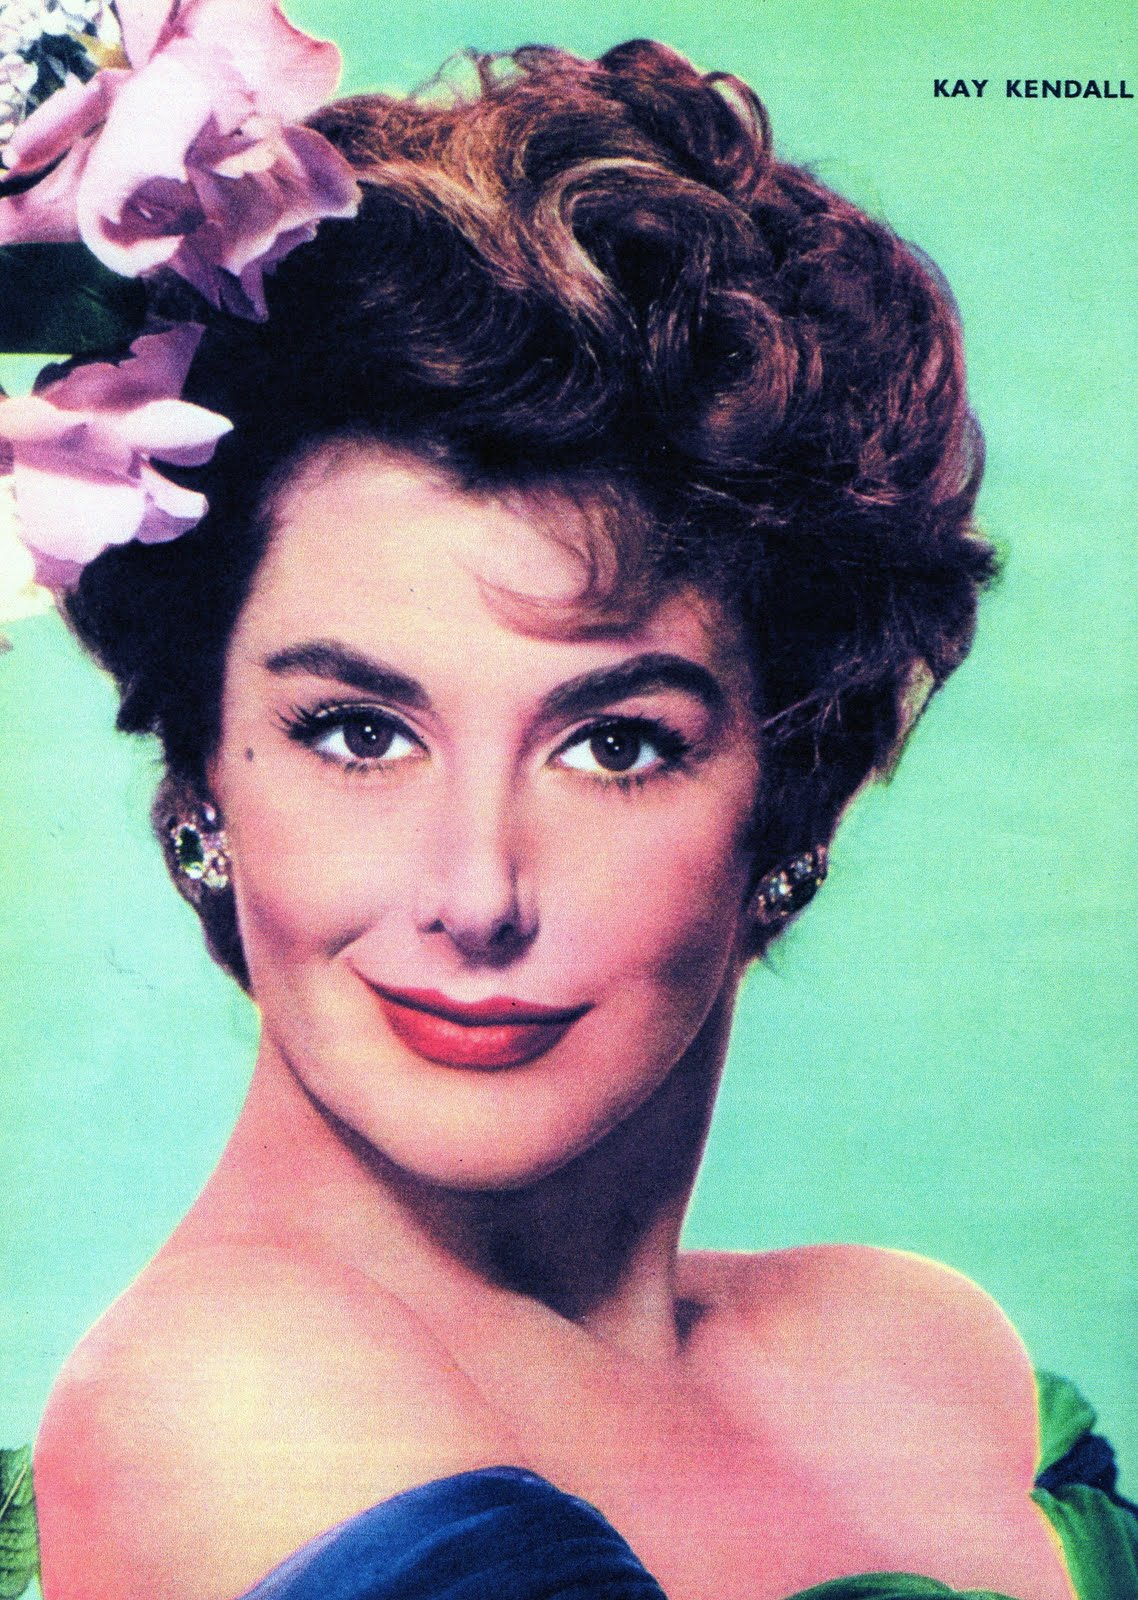 Kay Kendall Double Bill Pictures